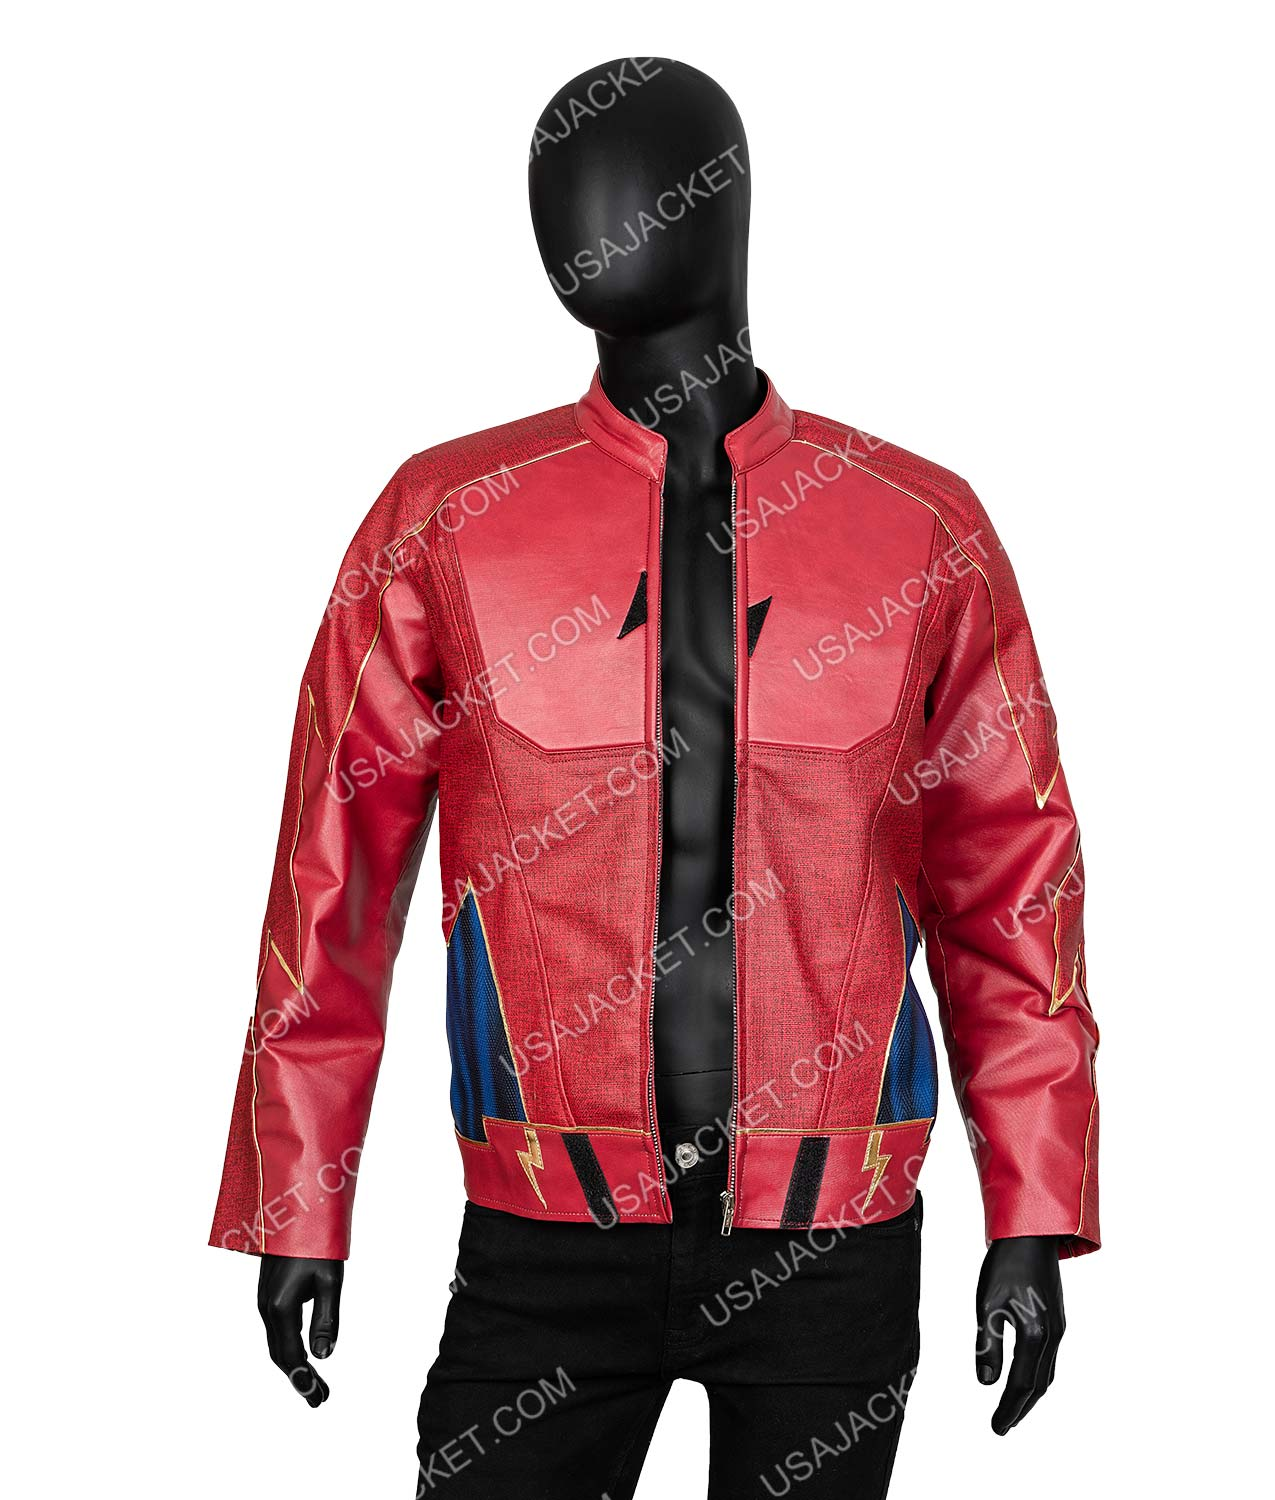 The Real Jay Garrick Leather Jacket